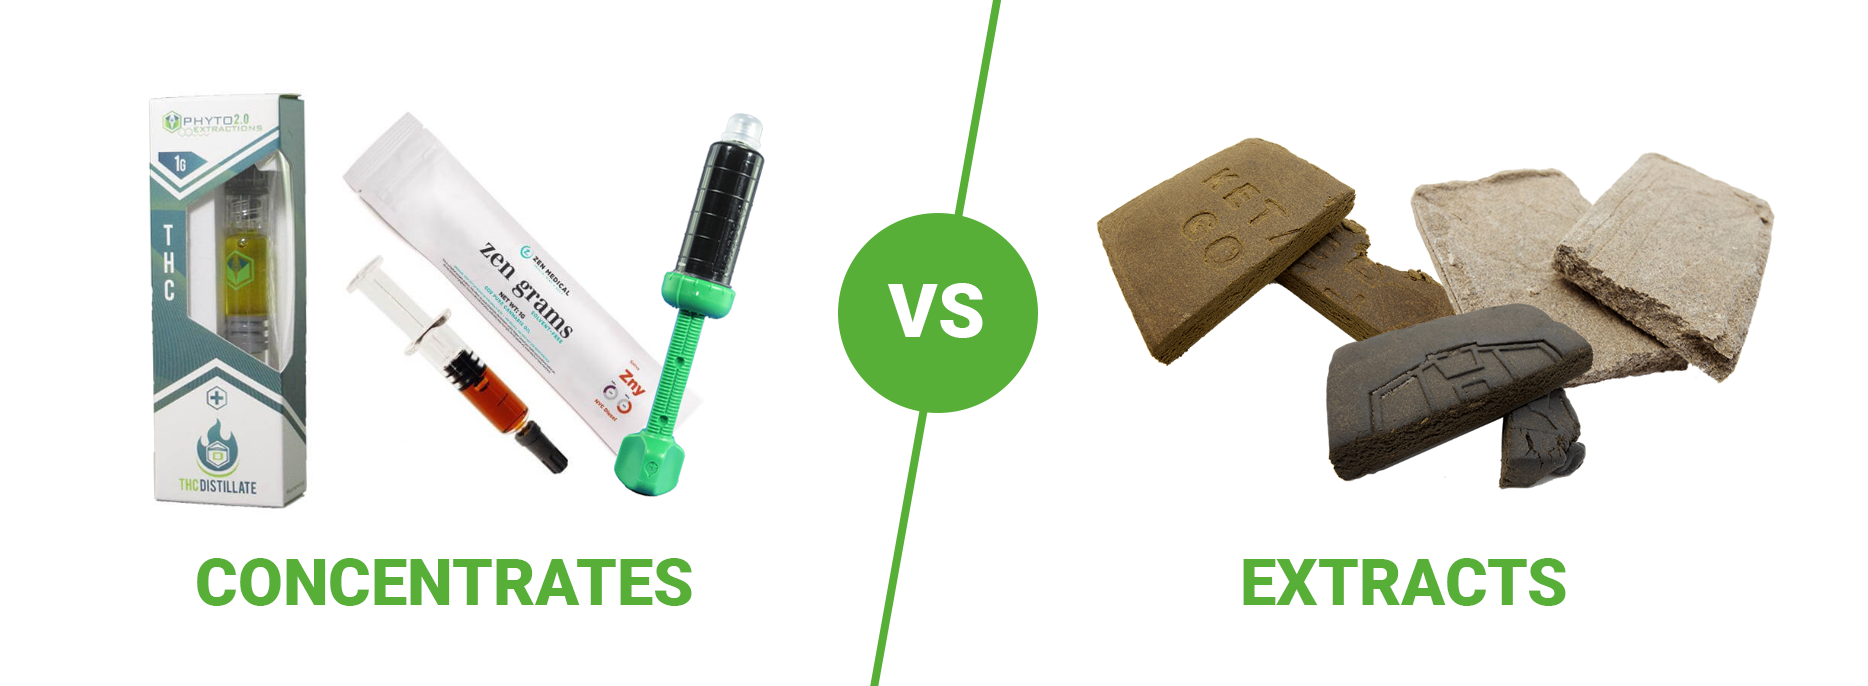 Concentrates vs. Extracts